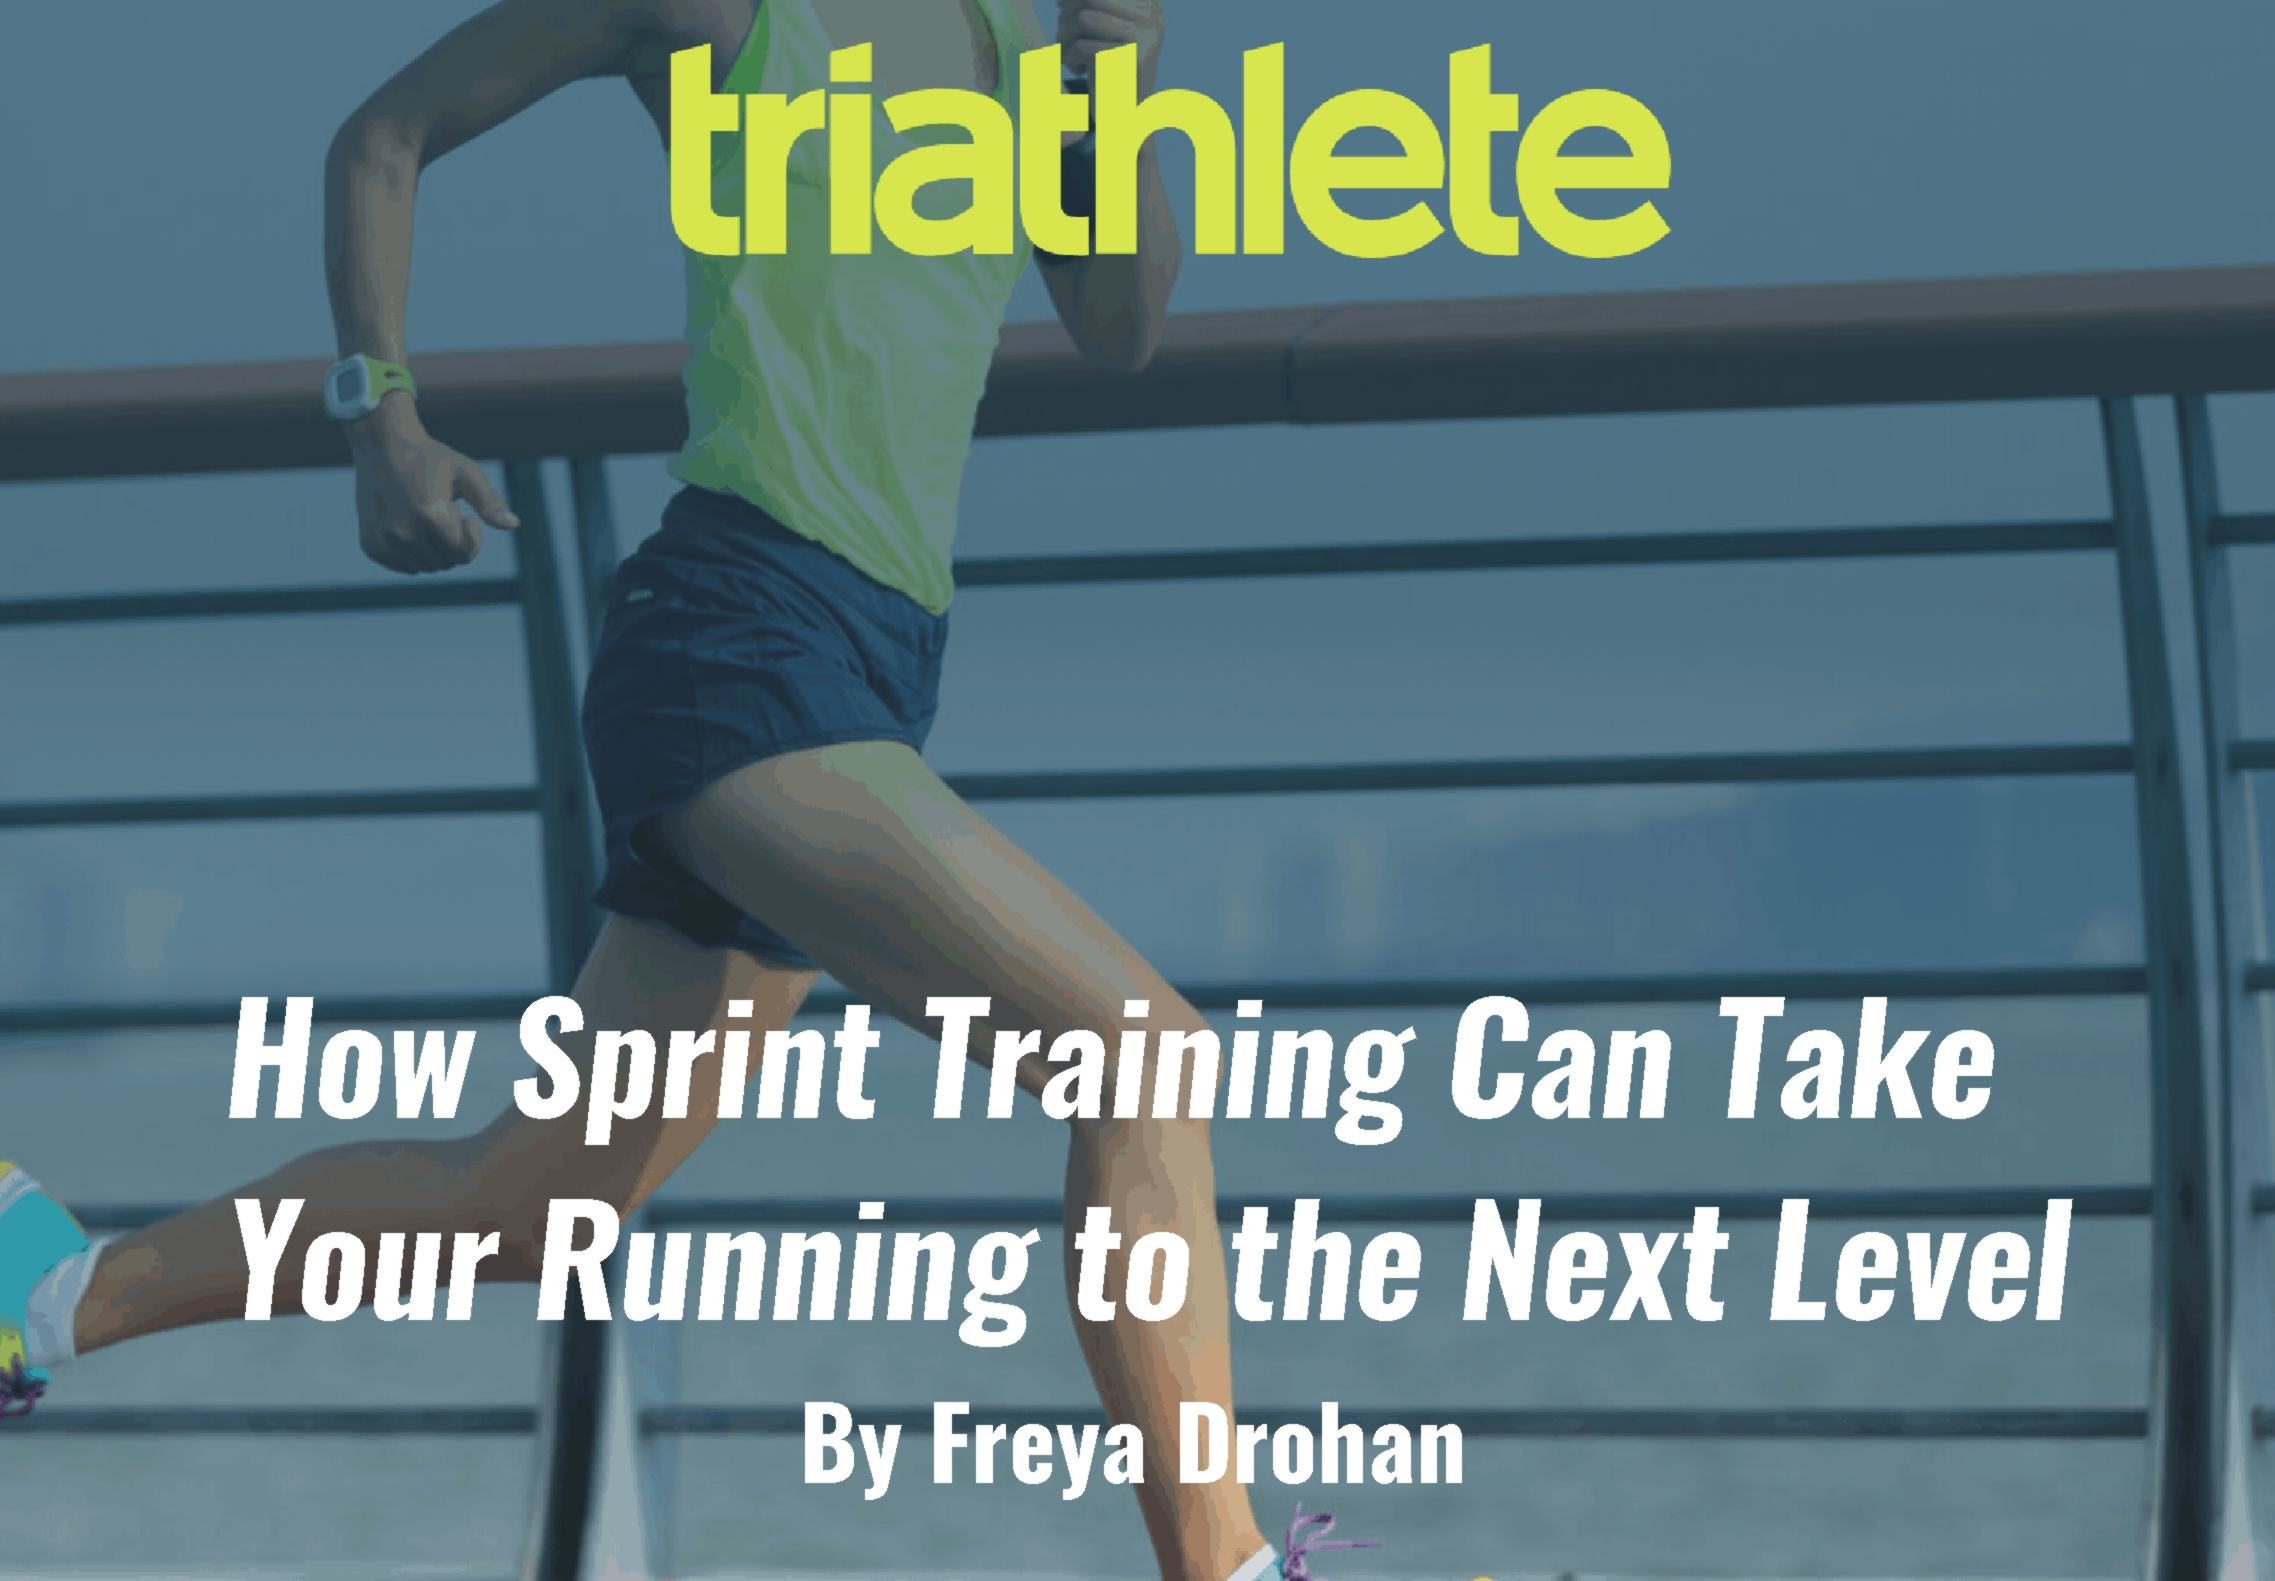 How Sprint Training Can Take Your Running to the Next Level – via Triathlete Magazine